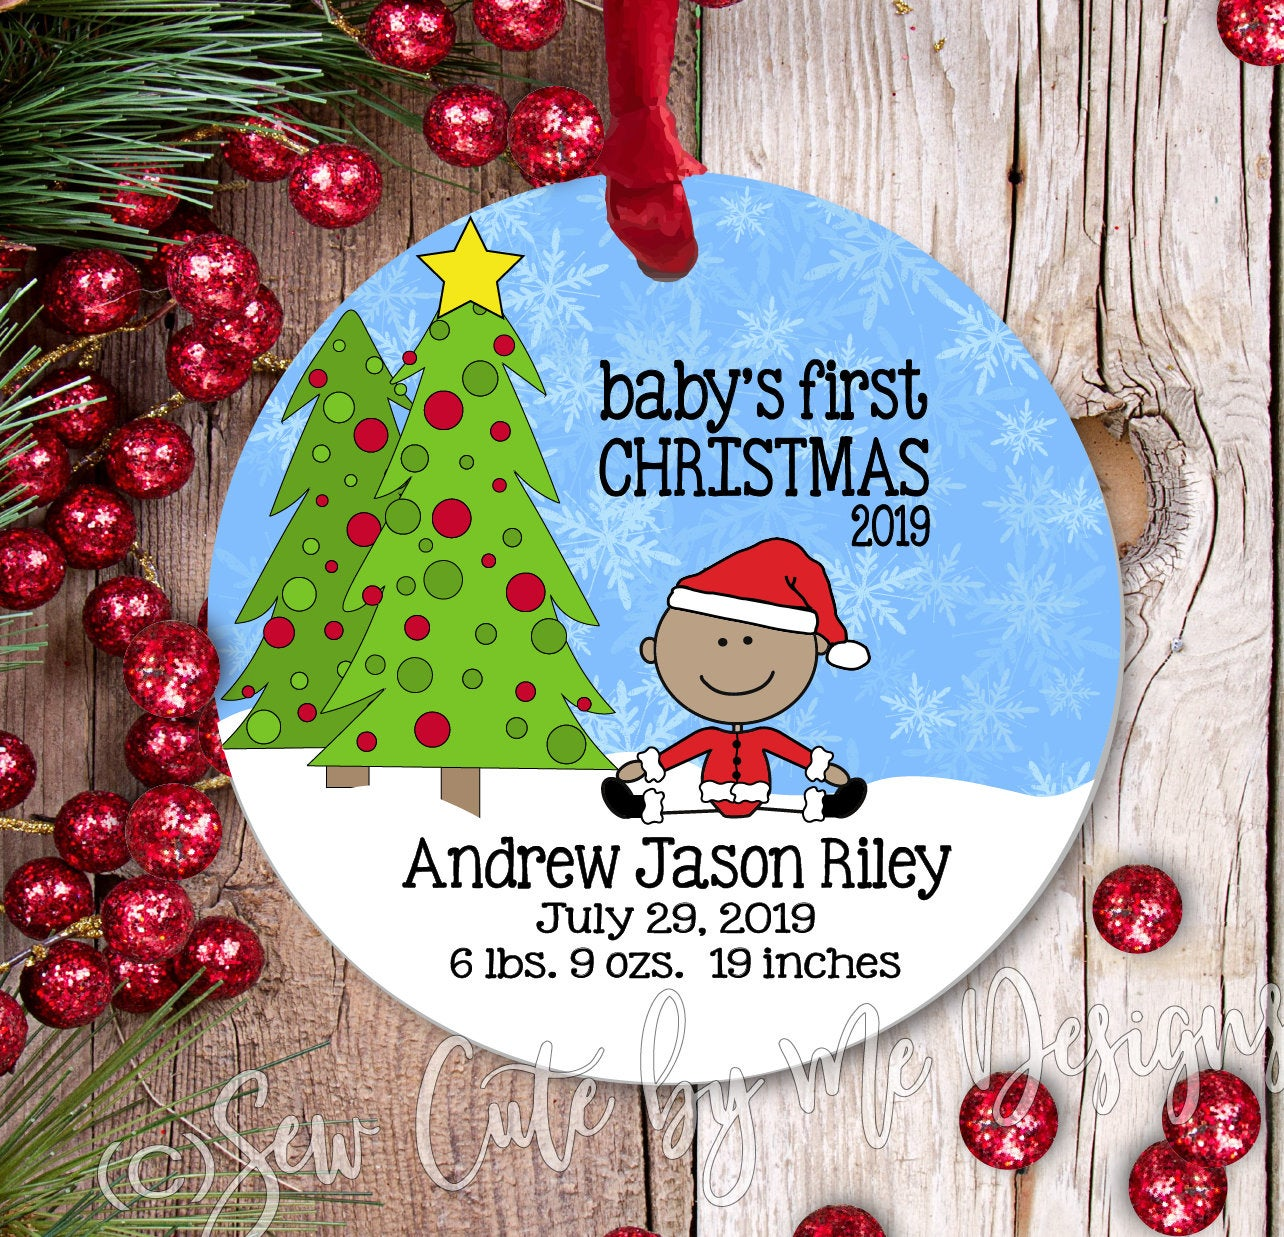 Personalized Baby's First Christmas Ornament - Baby Boy - medium